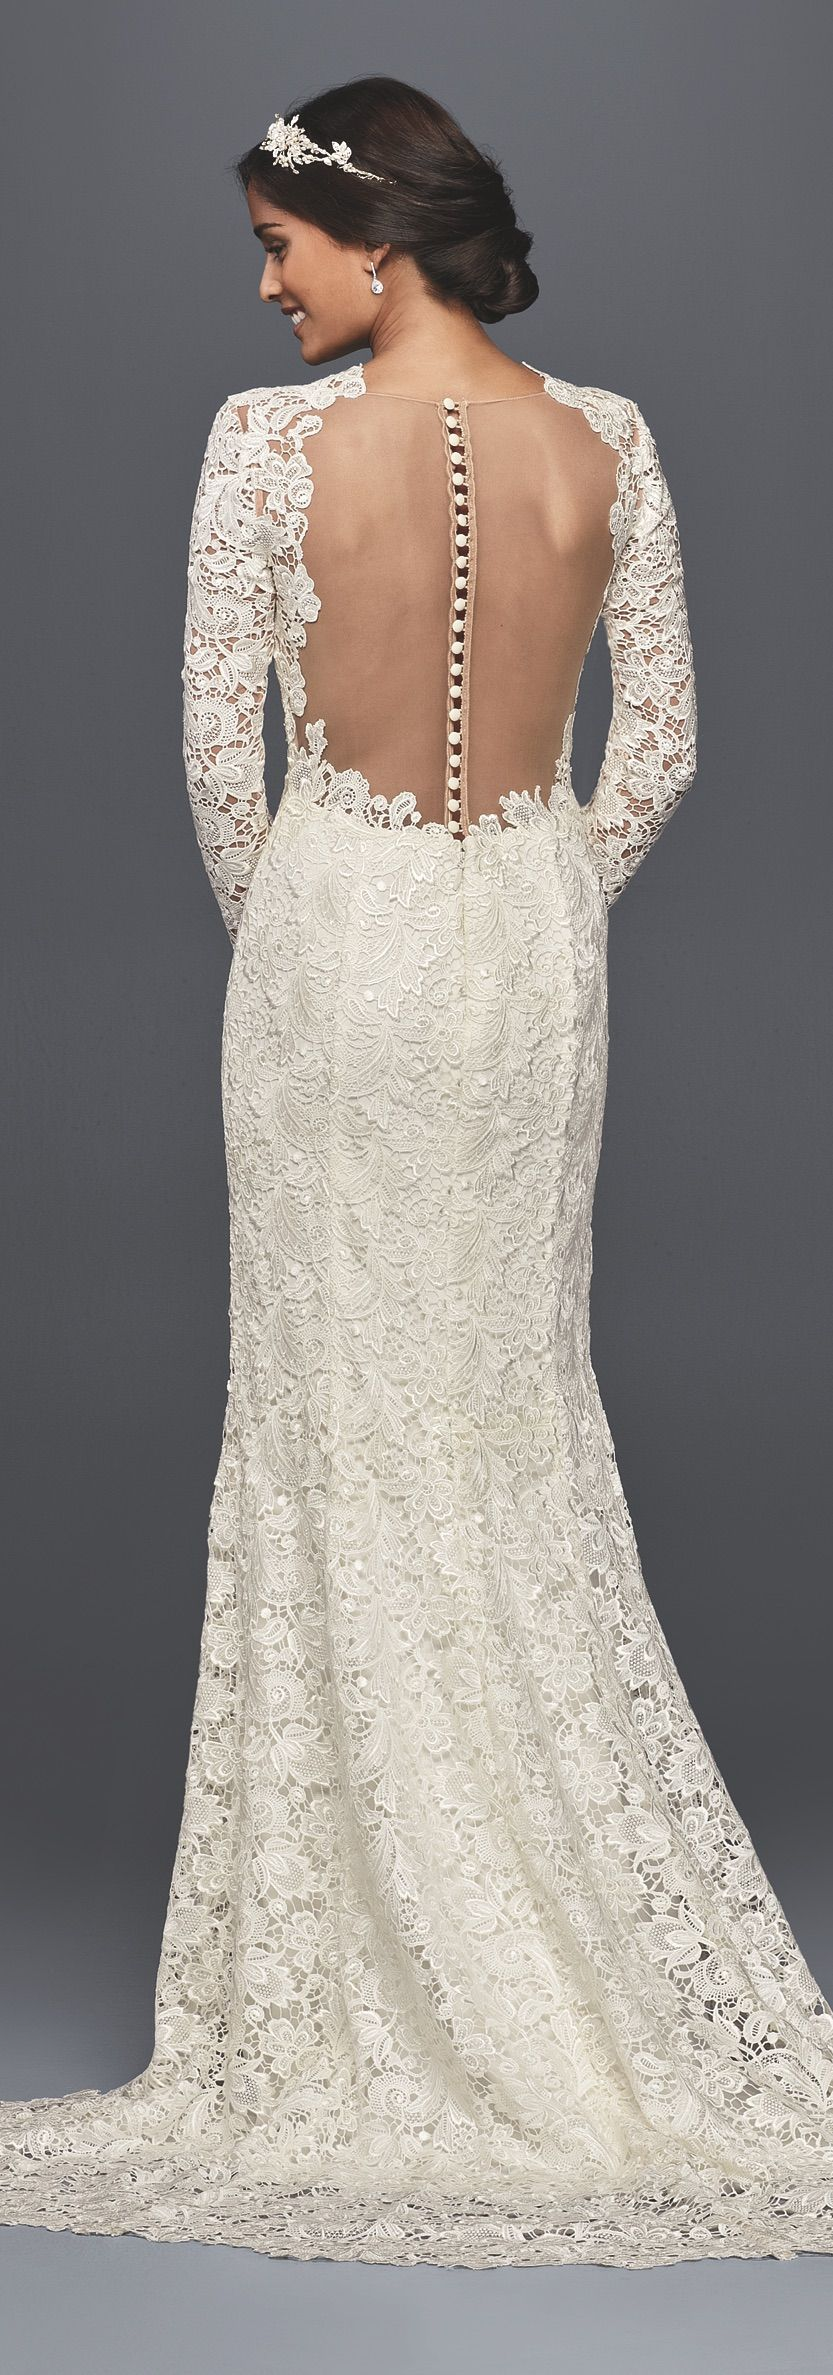 Long Sleeve Lace Wedding Dress With Open Back David S Bridal Long Sleeve Wedding Dress Lace Wedding Gowns Lace Wedding Dresses Lace